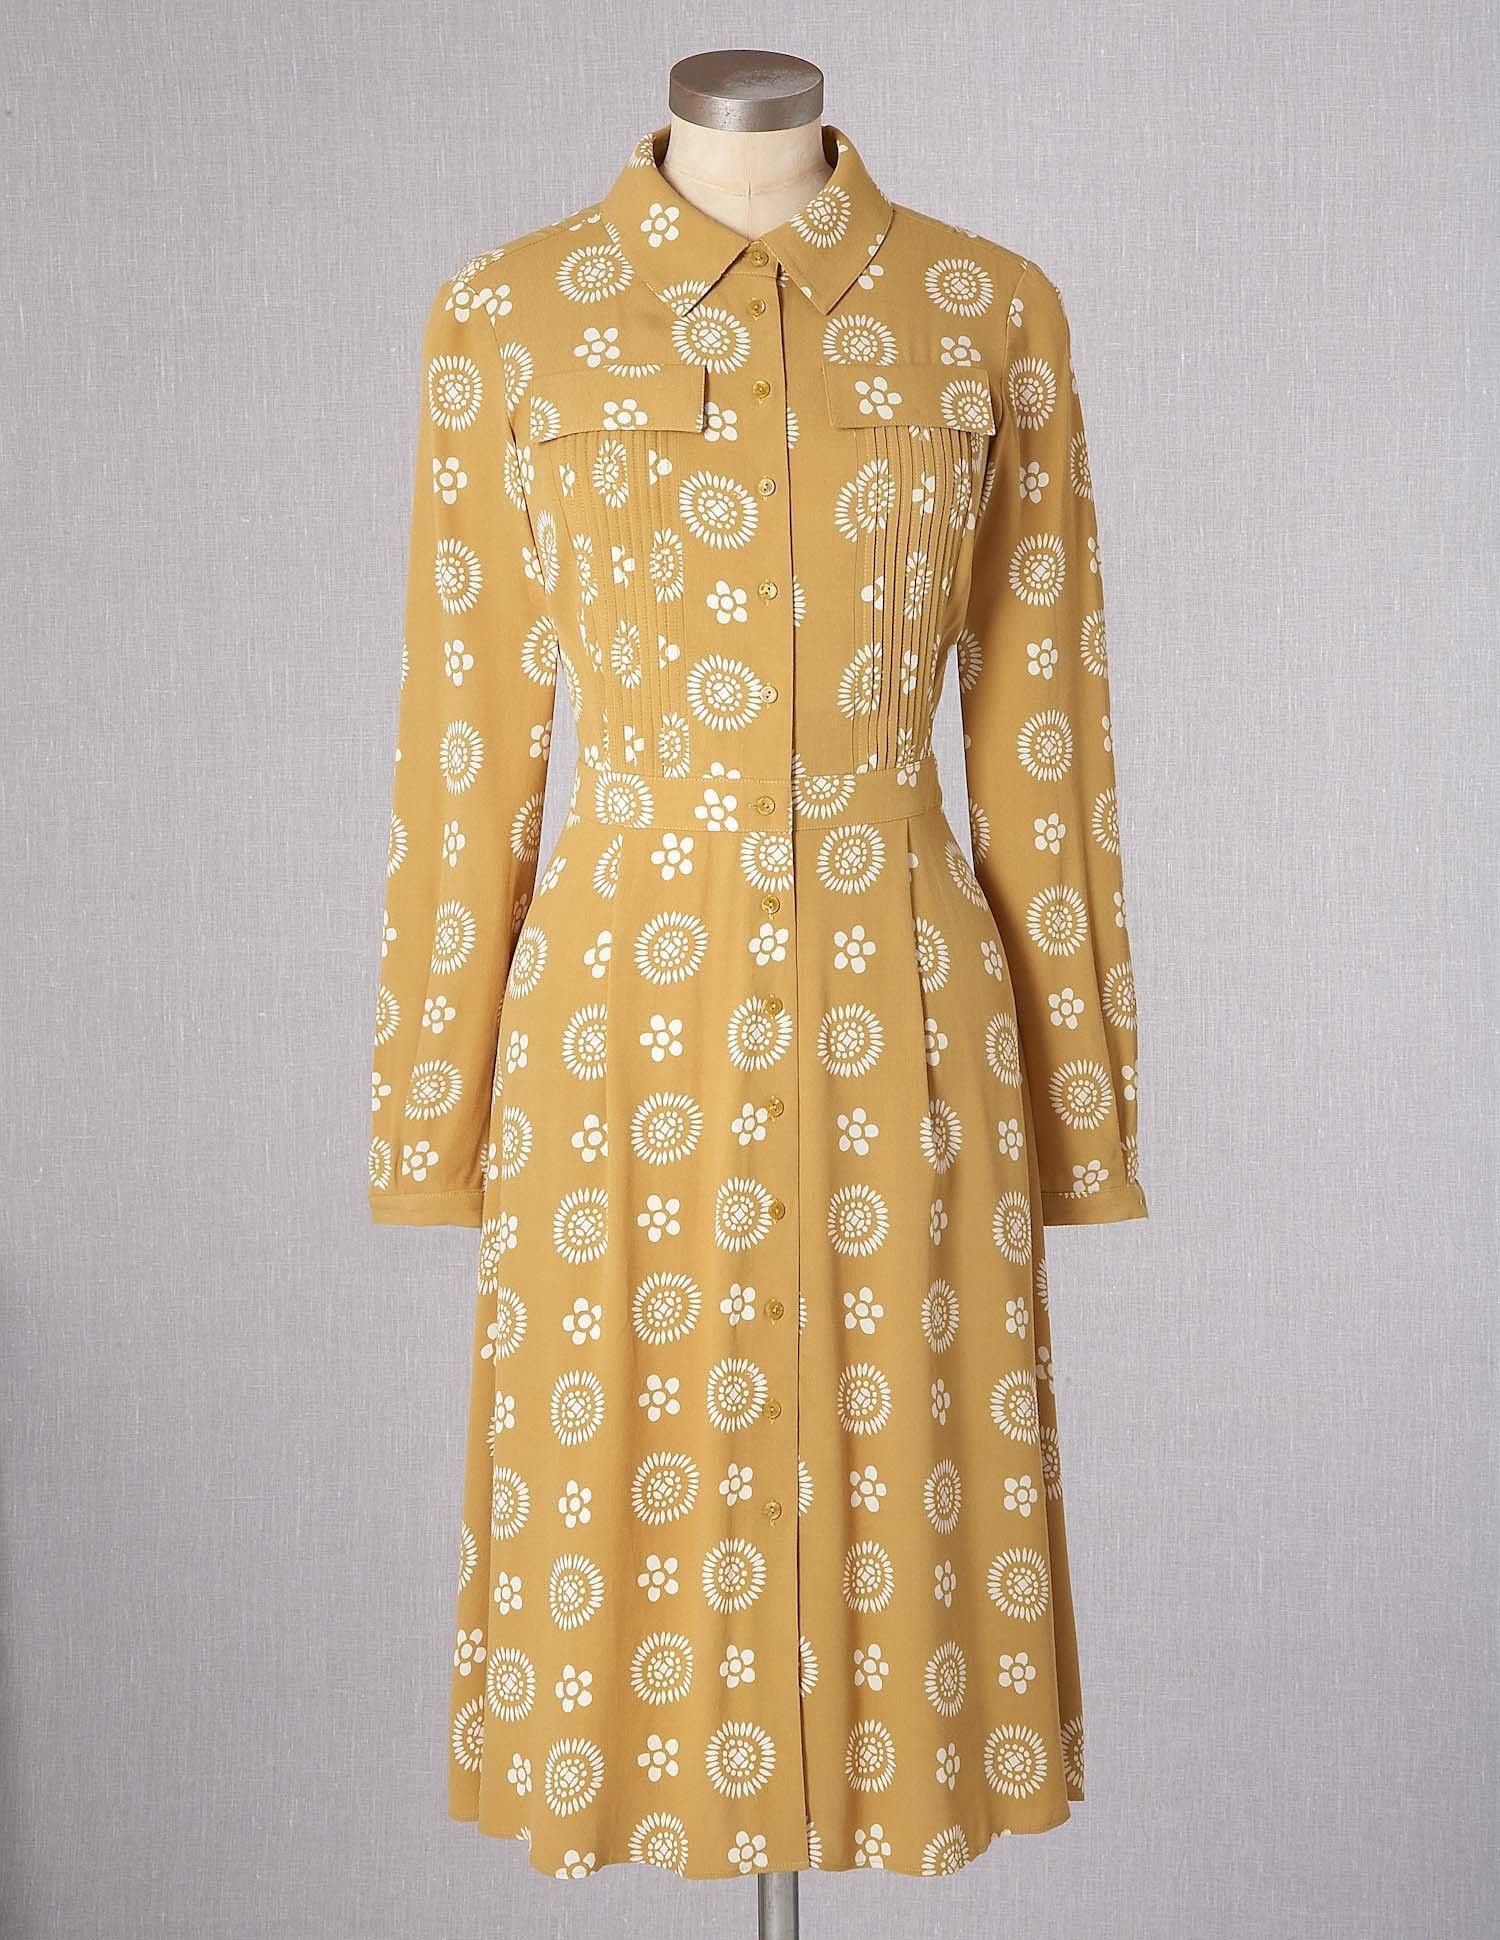 Vintage Shirt Dress Wh447 Below Knee Dresses At Boden My Style